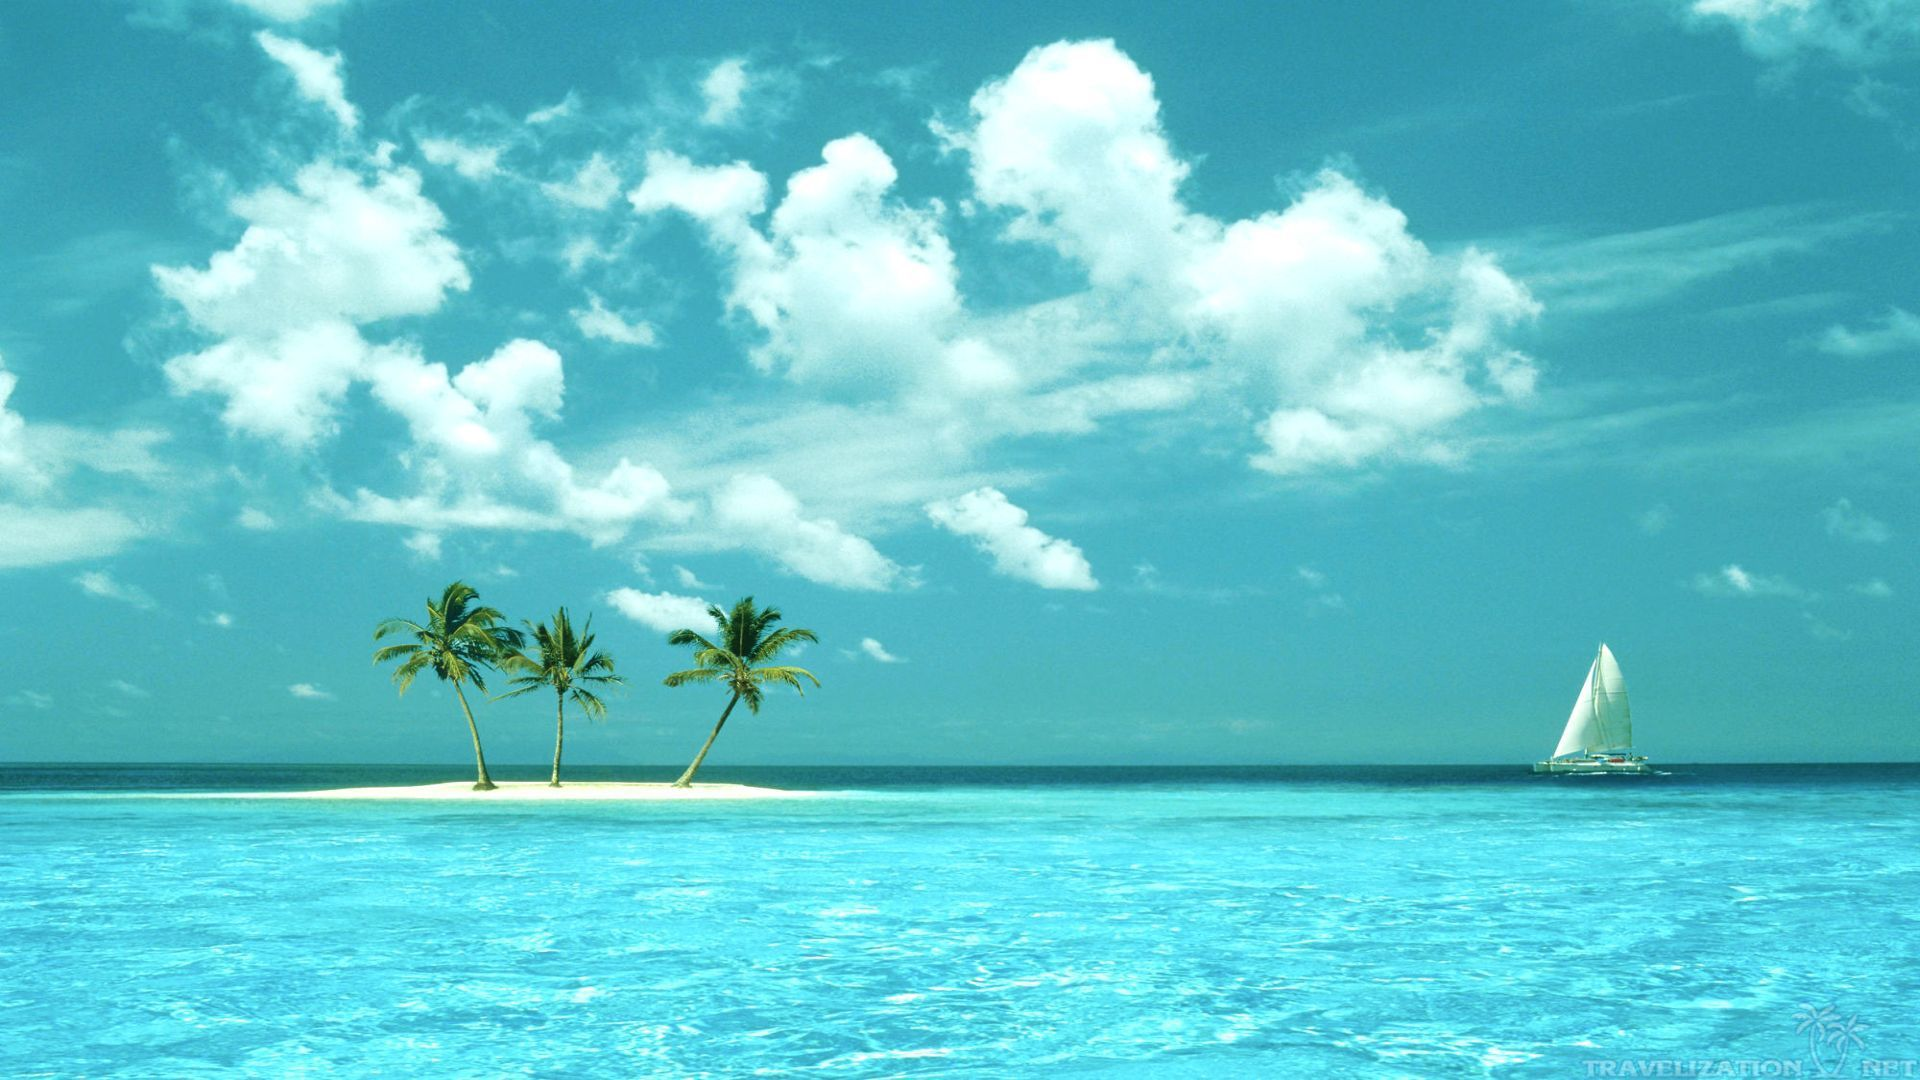 Hd Tropical Island Beach Paradise Wallpapers And Backgrounds: Water Bungalows On A Tropical Island HD Desktop Wallpaper